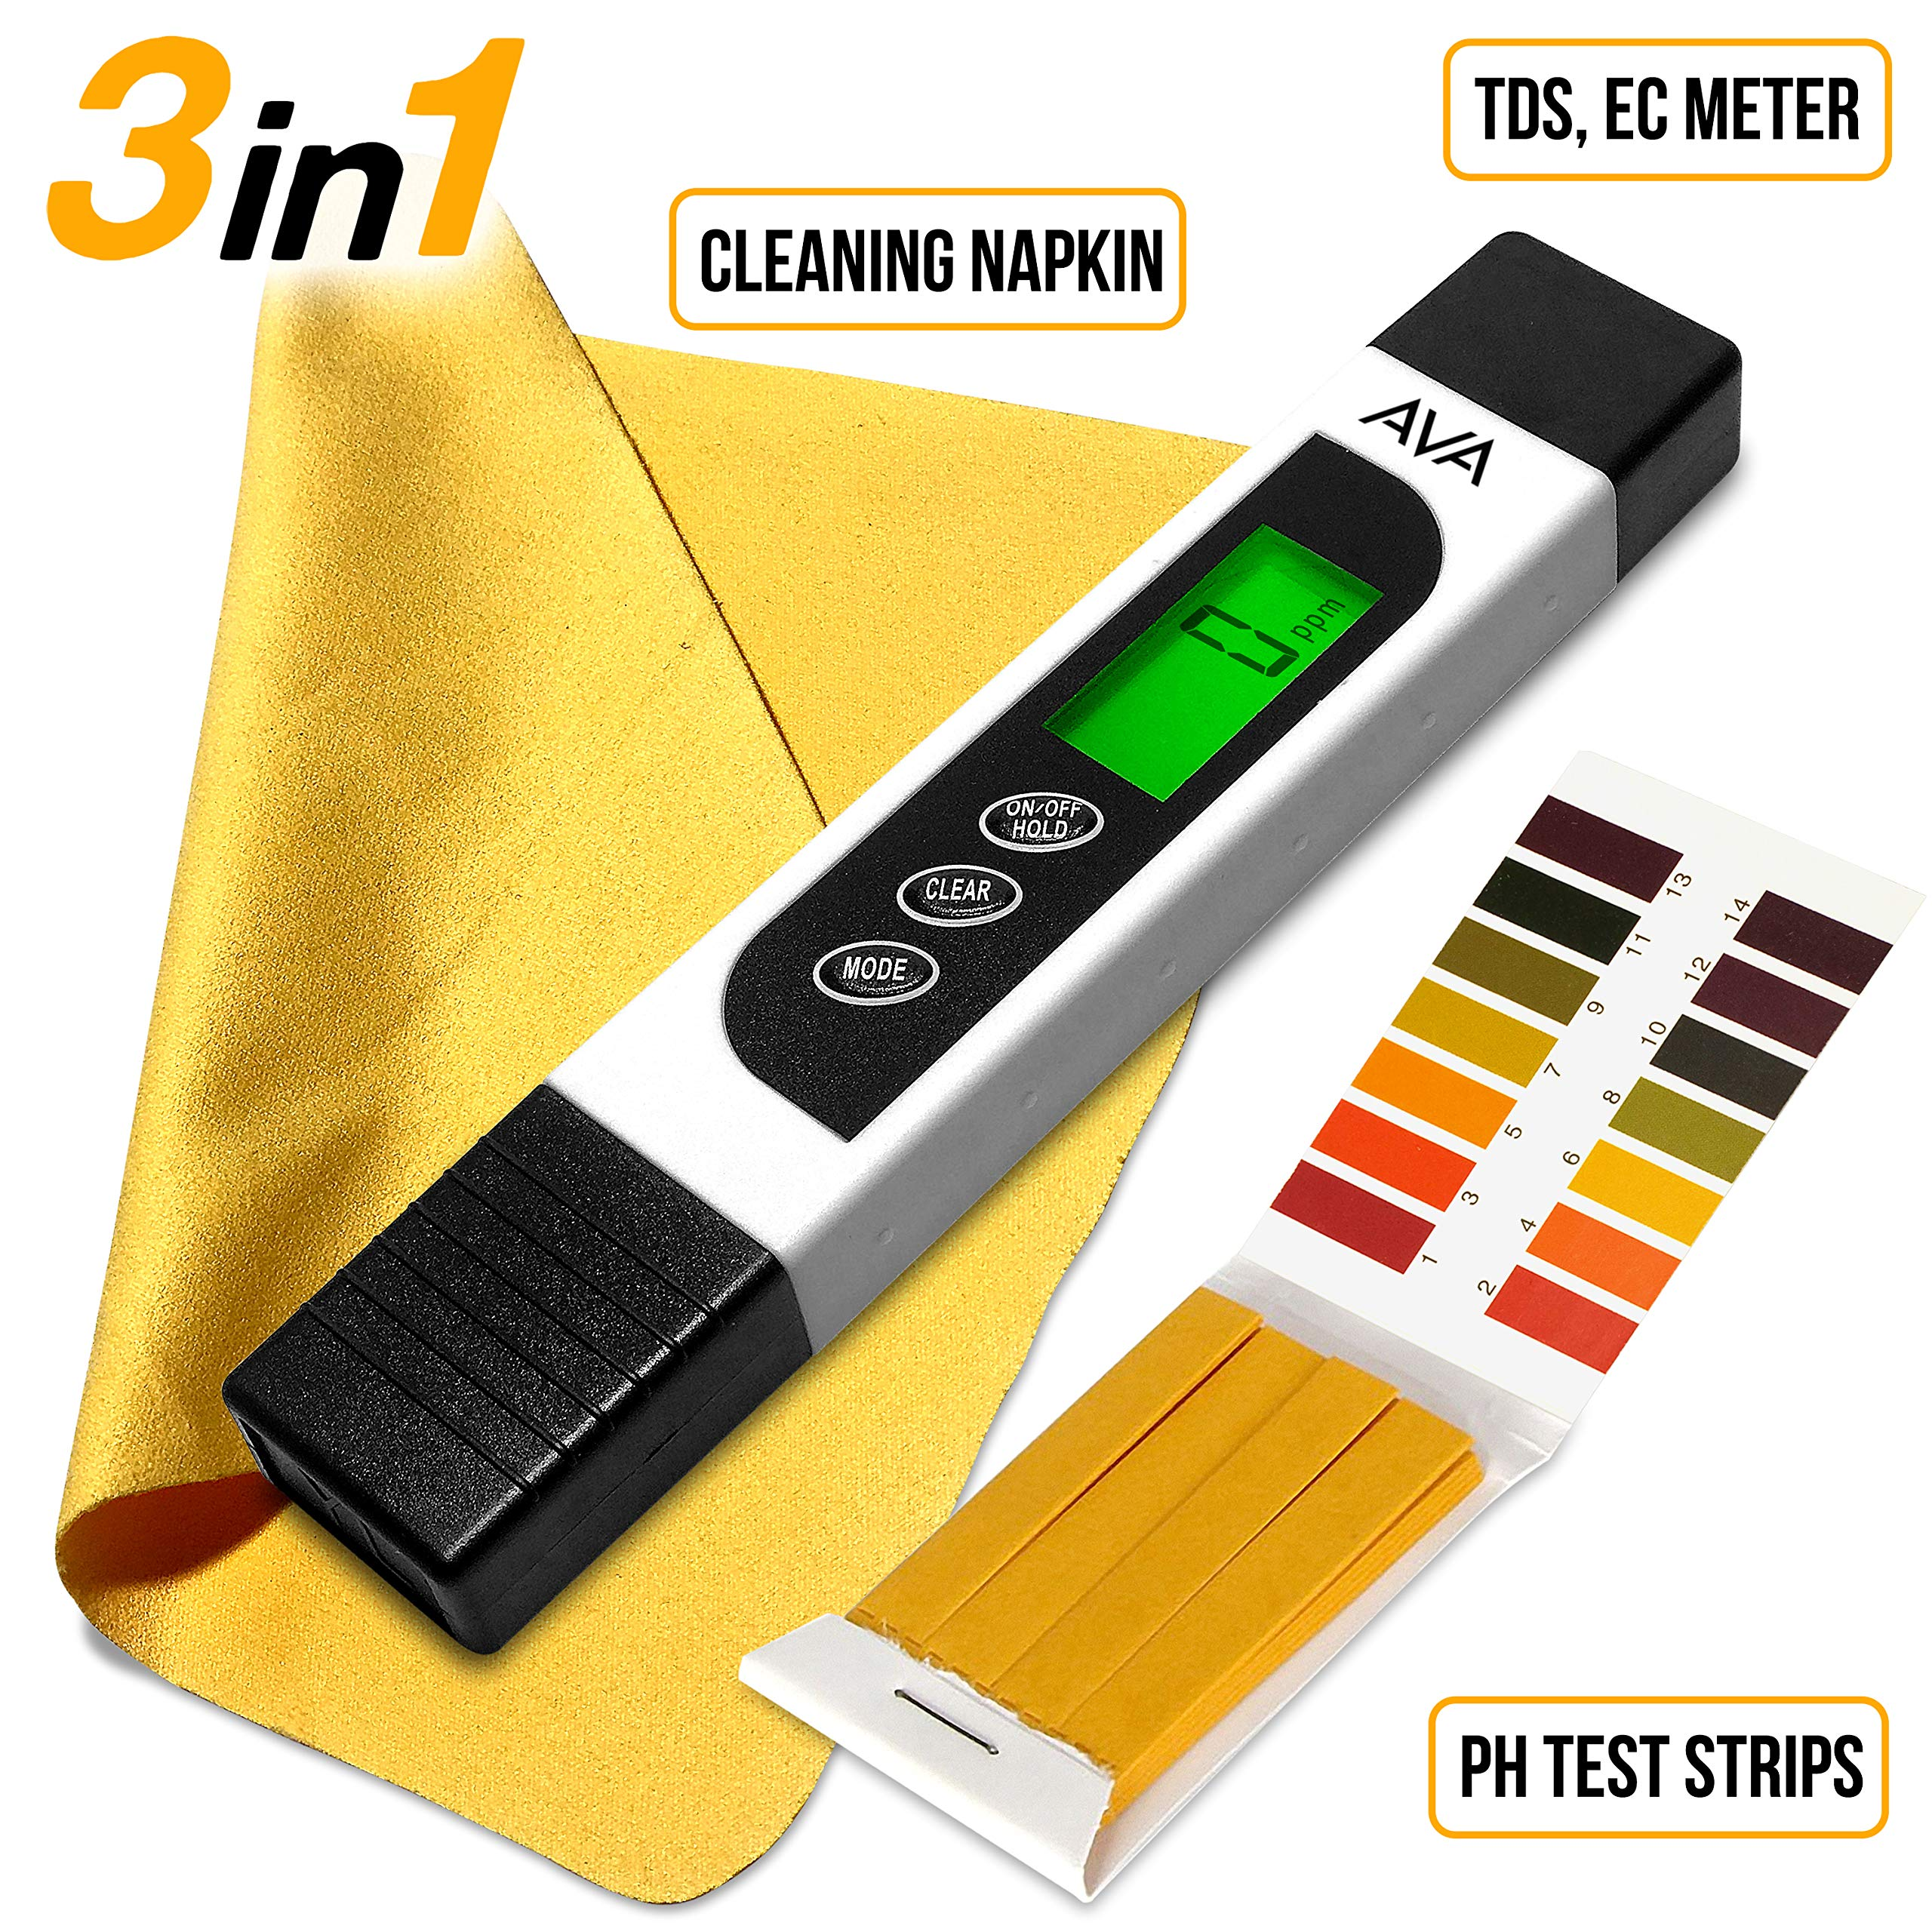 6 in 1 Water Quality Tester for Drinking Water - TDS EC & Temperature Meter - 0-9990 ppm - Ideal Water Testing Kit for Aquariums Hydroponics and More - PH Test Strips & Cleaning Napkin. by AVA